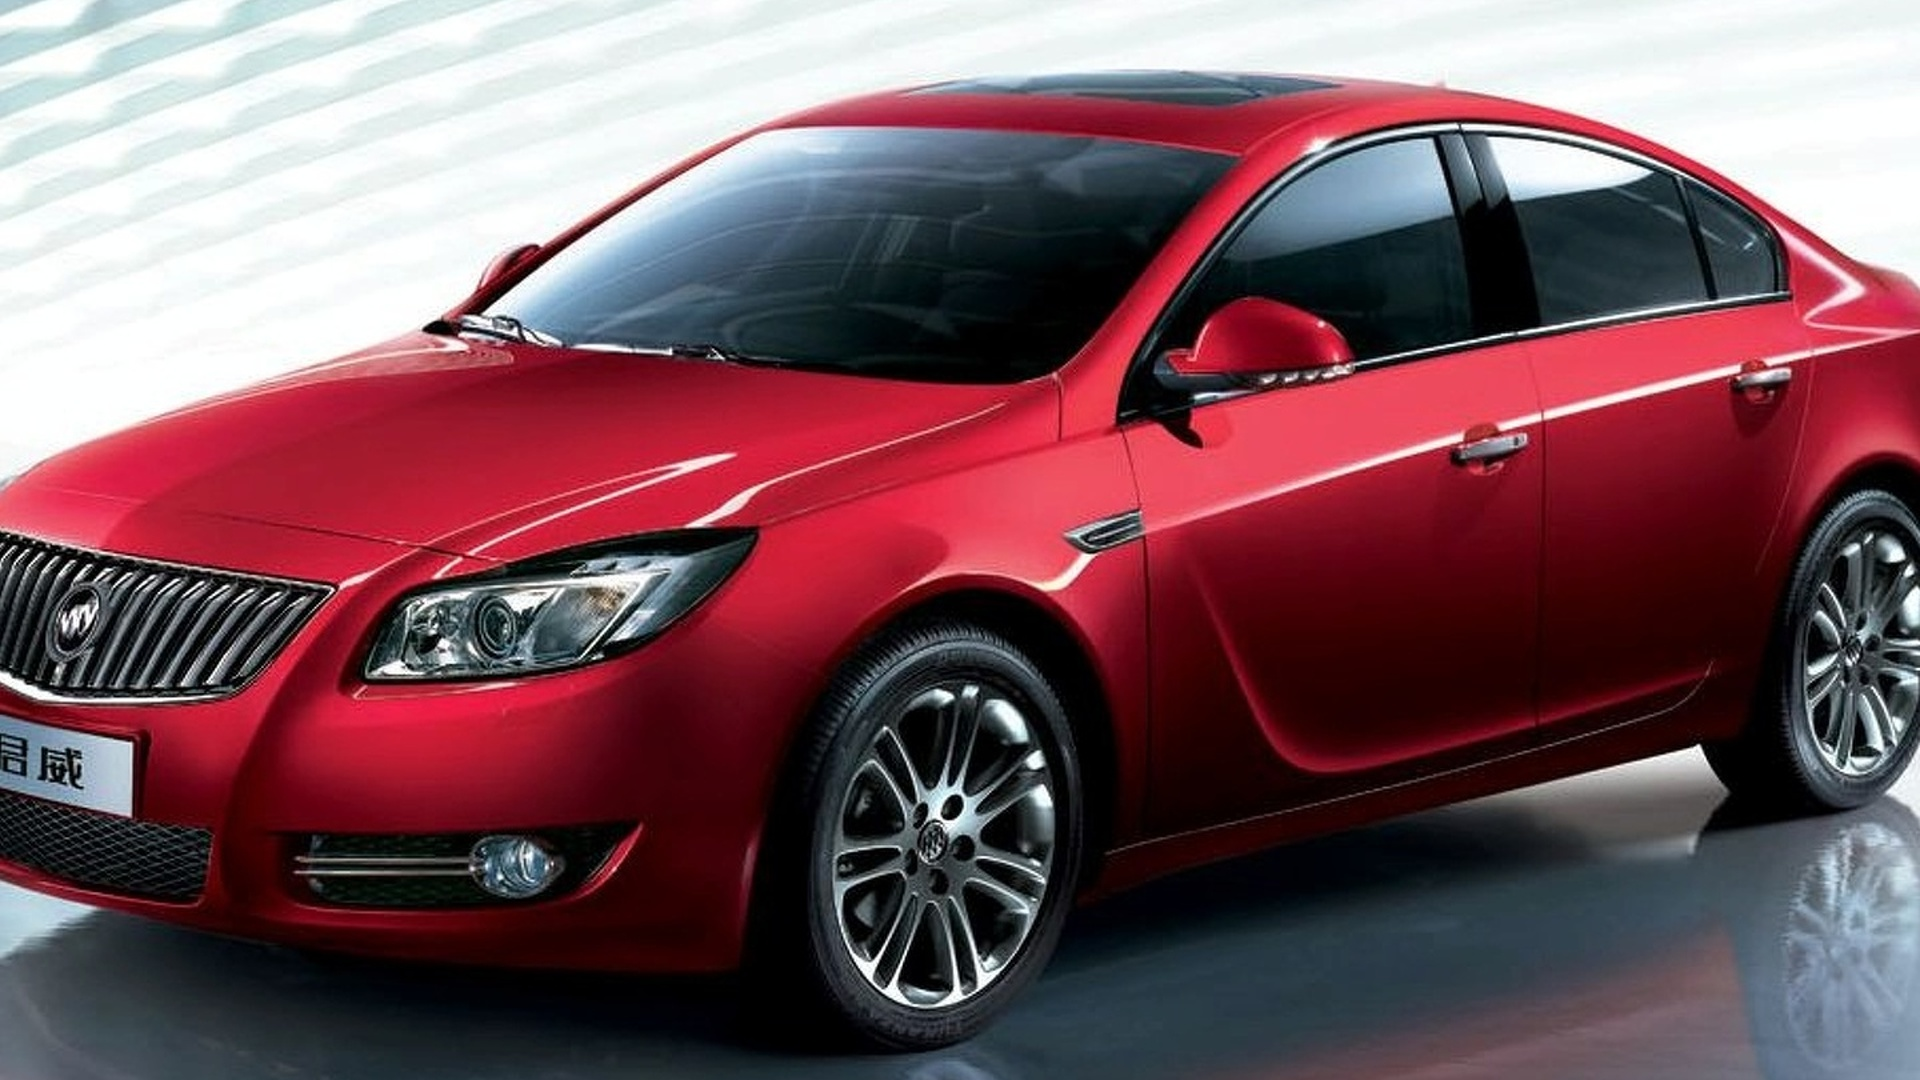 buick regal based on opel insignia launched in china. Black Bedroom Furniture Sets. Home Design Ideas